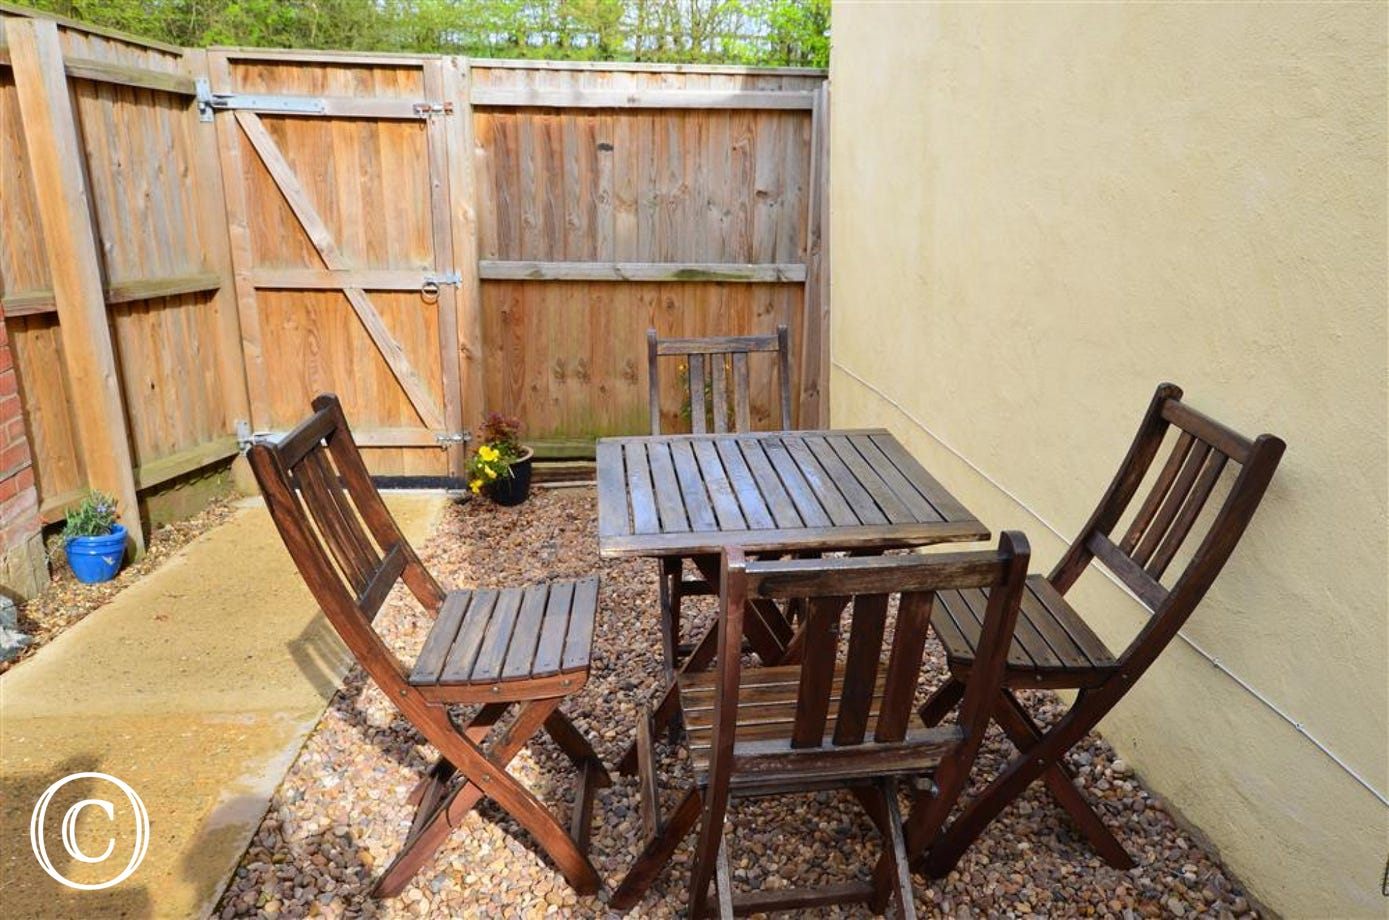 The rear courtyard and patio furniture